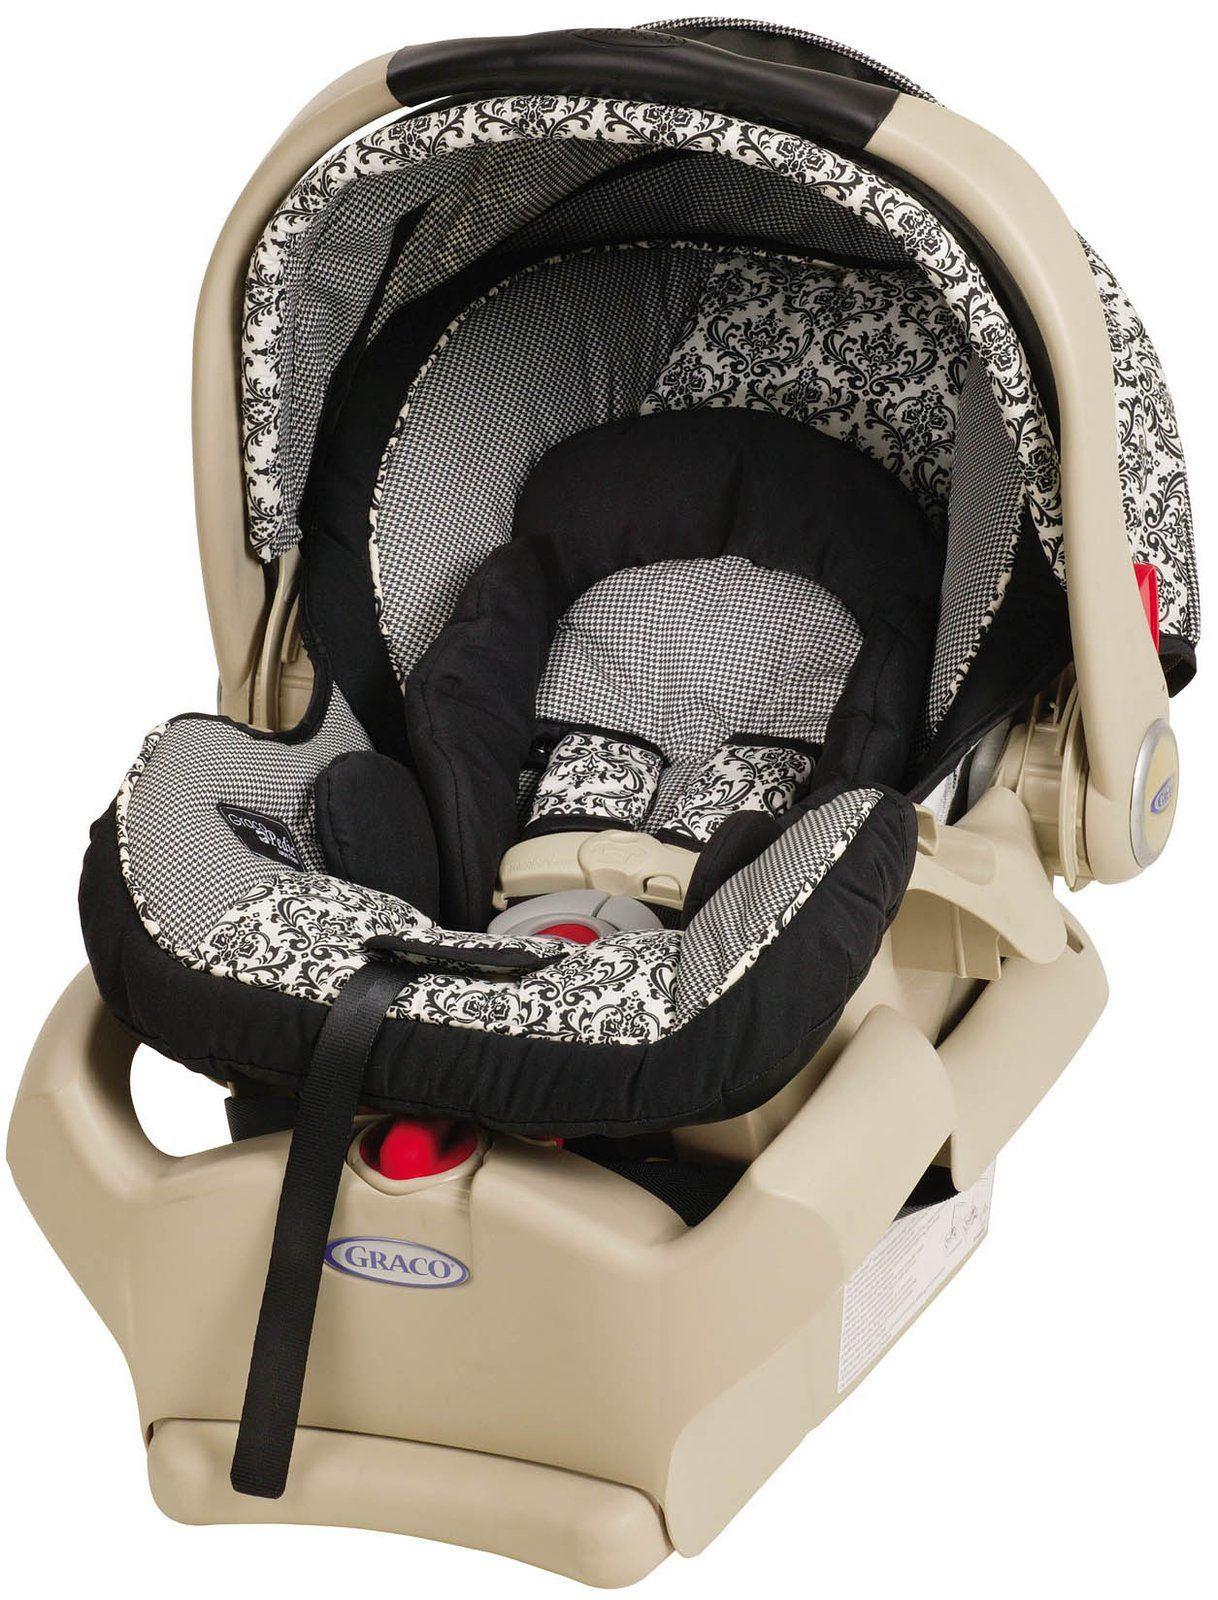 Graco SnugRide 35 Infant Car Seat Loved Our But Couldnt Use It Up To The 32 Lb Weight Limit Because Thats Super Heavy Get In And